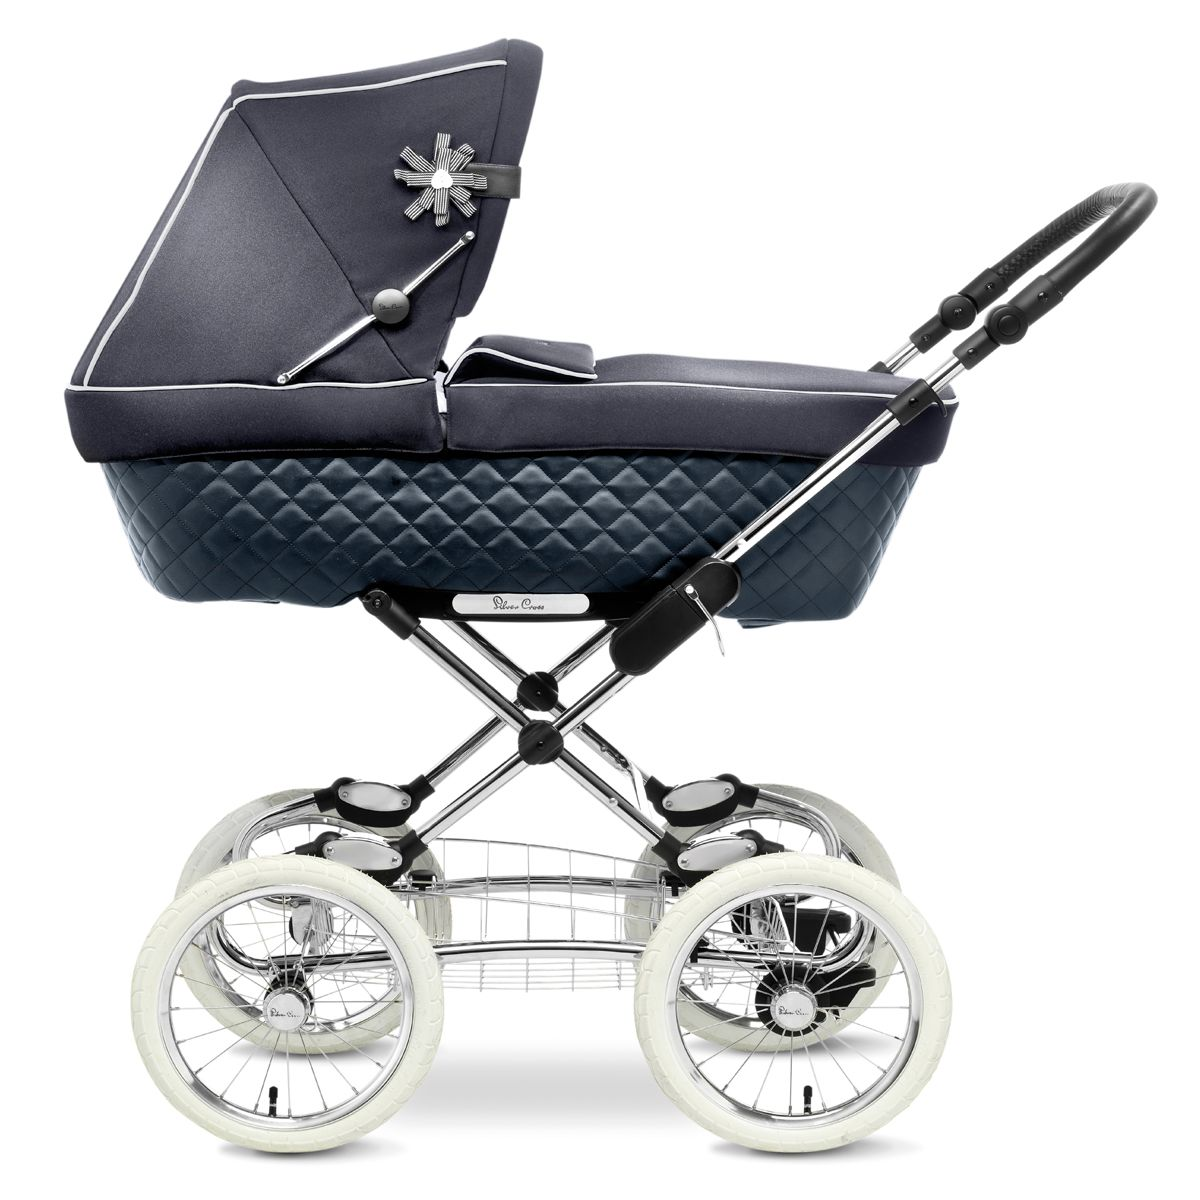 1fdd2665c The Sleepover pram from Silver Cross features a beautiful quilted ...